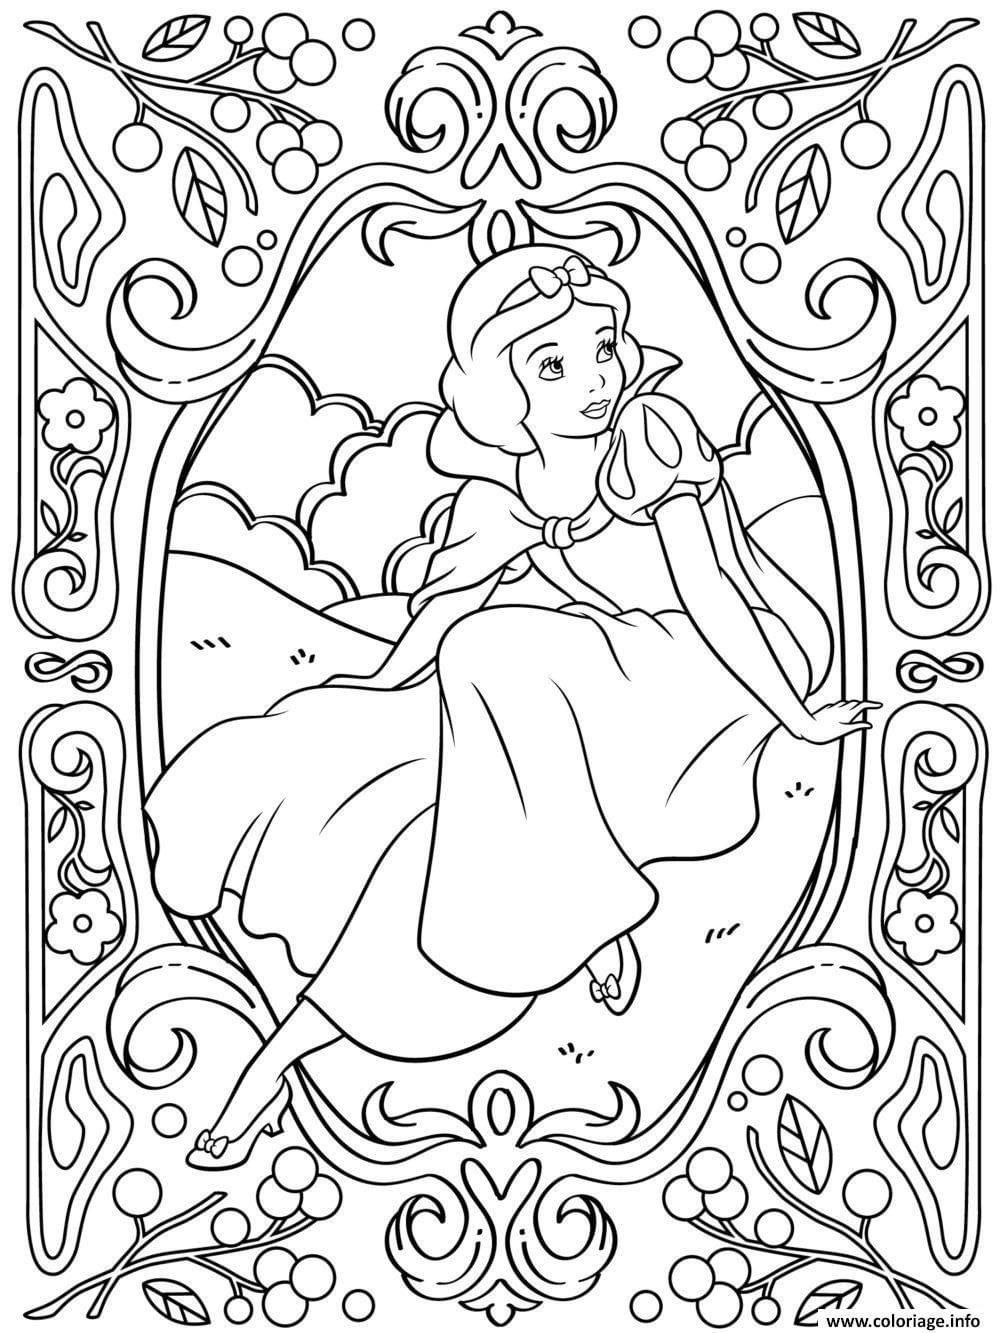 Pin On Disney Coloring Pages Drawings